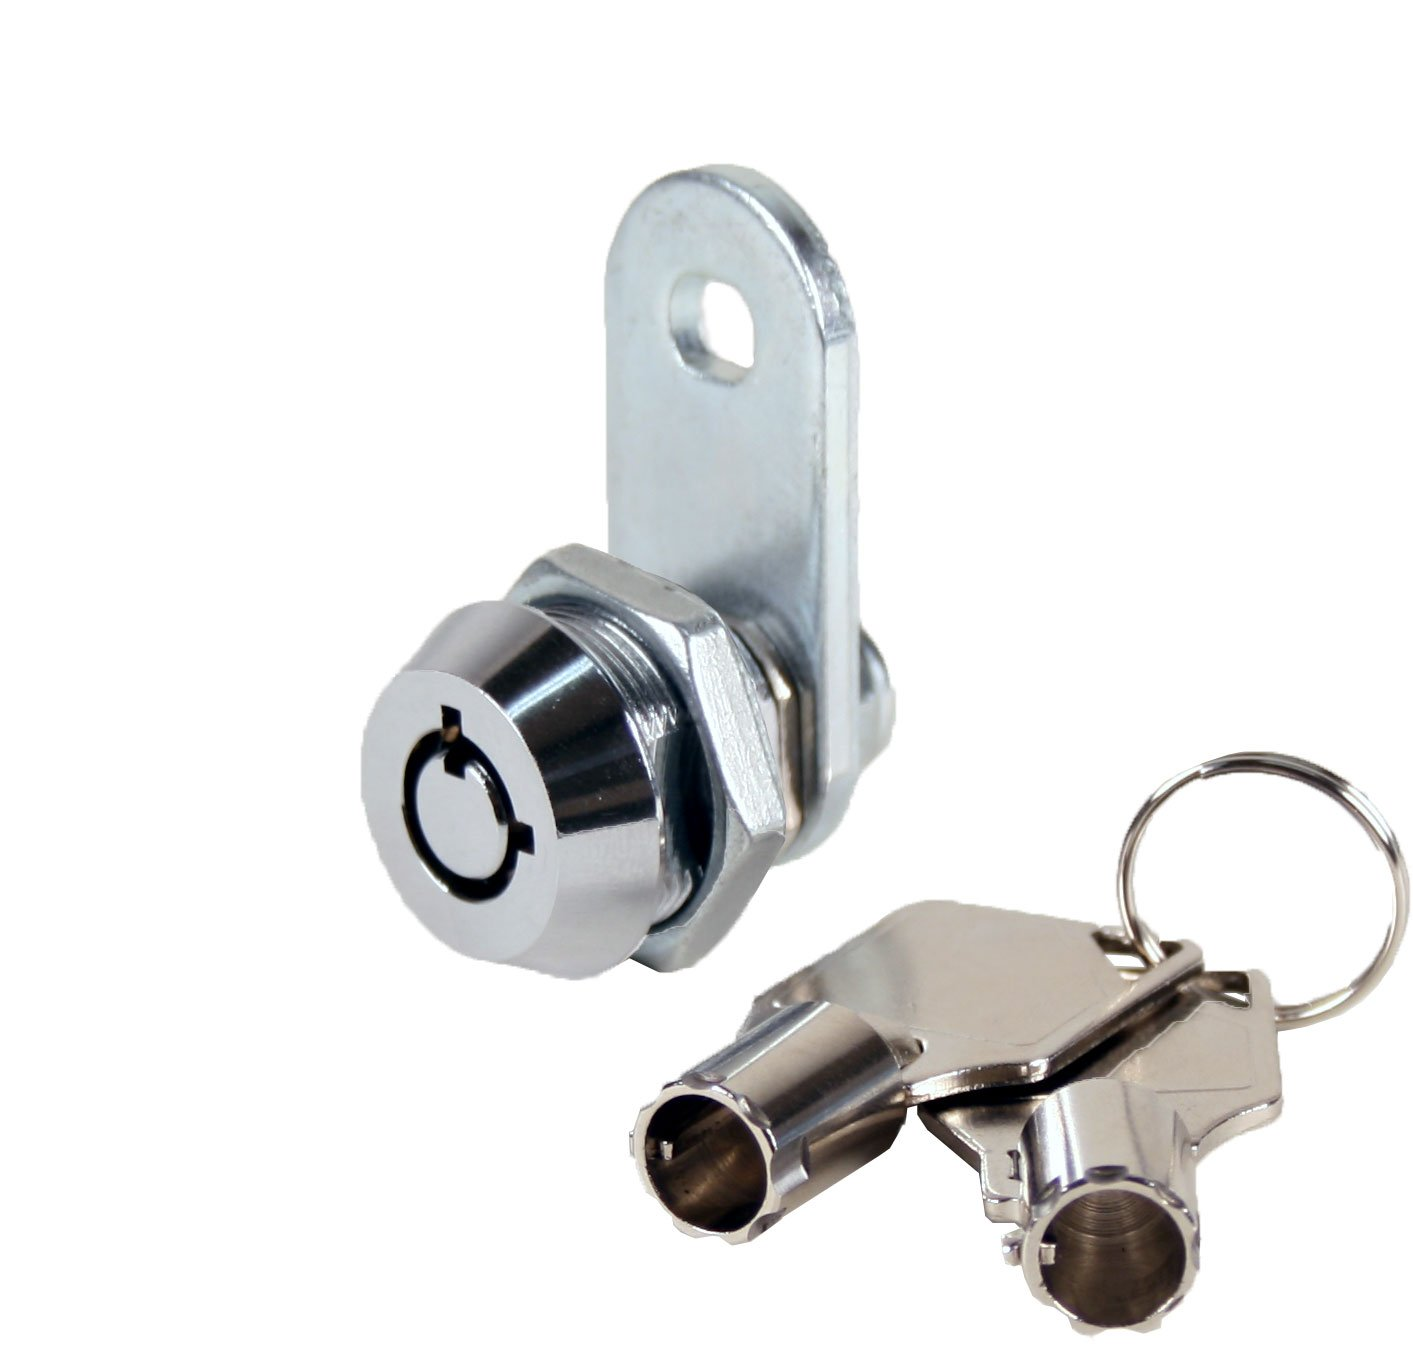 "FJM Security 2400AXS-KA Tubular Cam Lock with 3/8"" Cylinder and Chrome Finish, Keyed Alike"